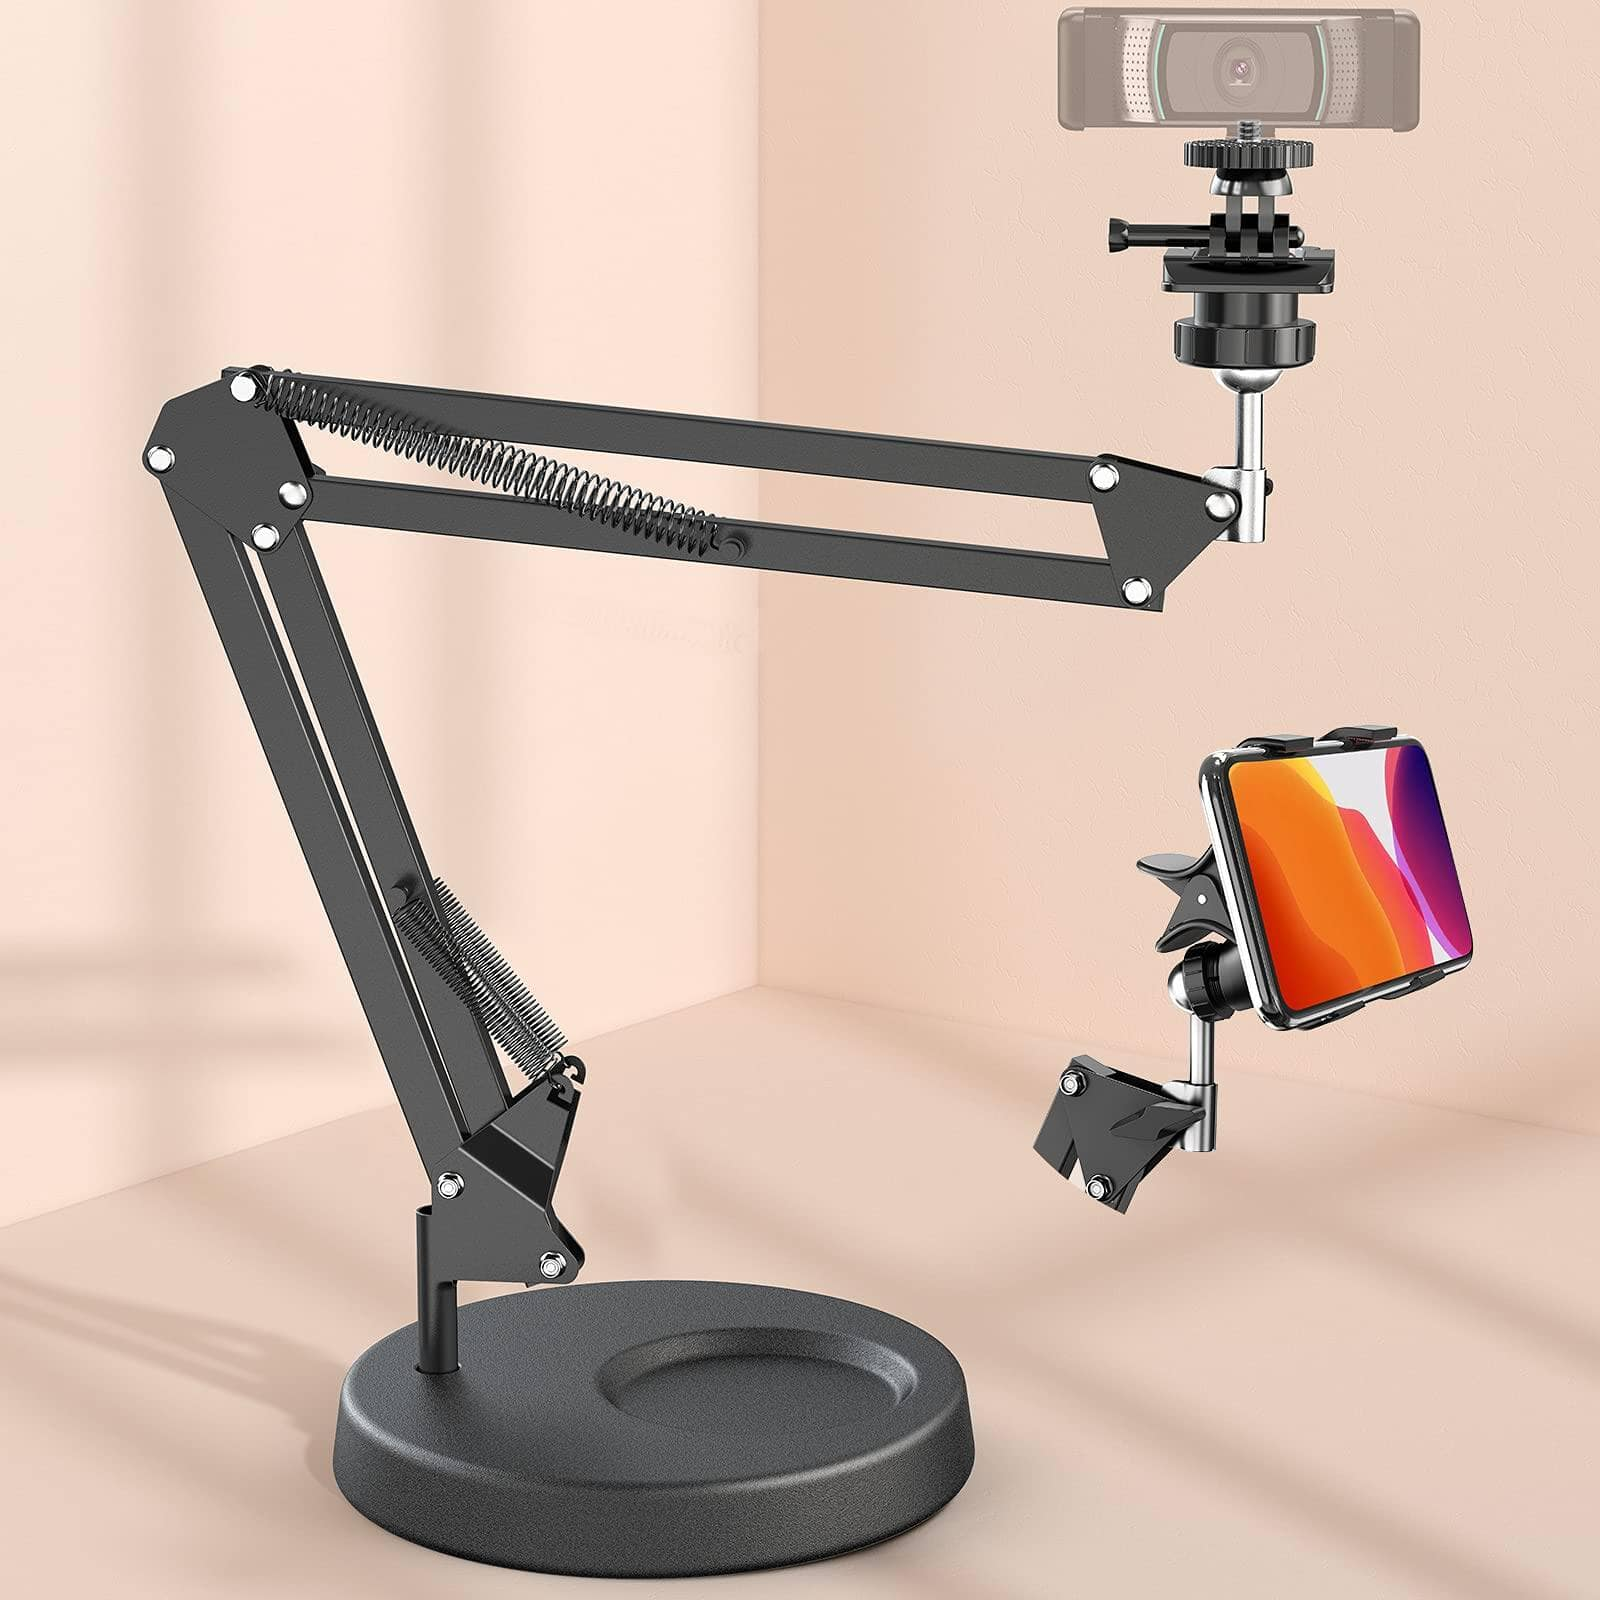 Amada Adjustable Webcam Stand with Phone Holder for $10.85 + Free Shipping w/ Prime or orders $25+